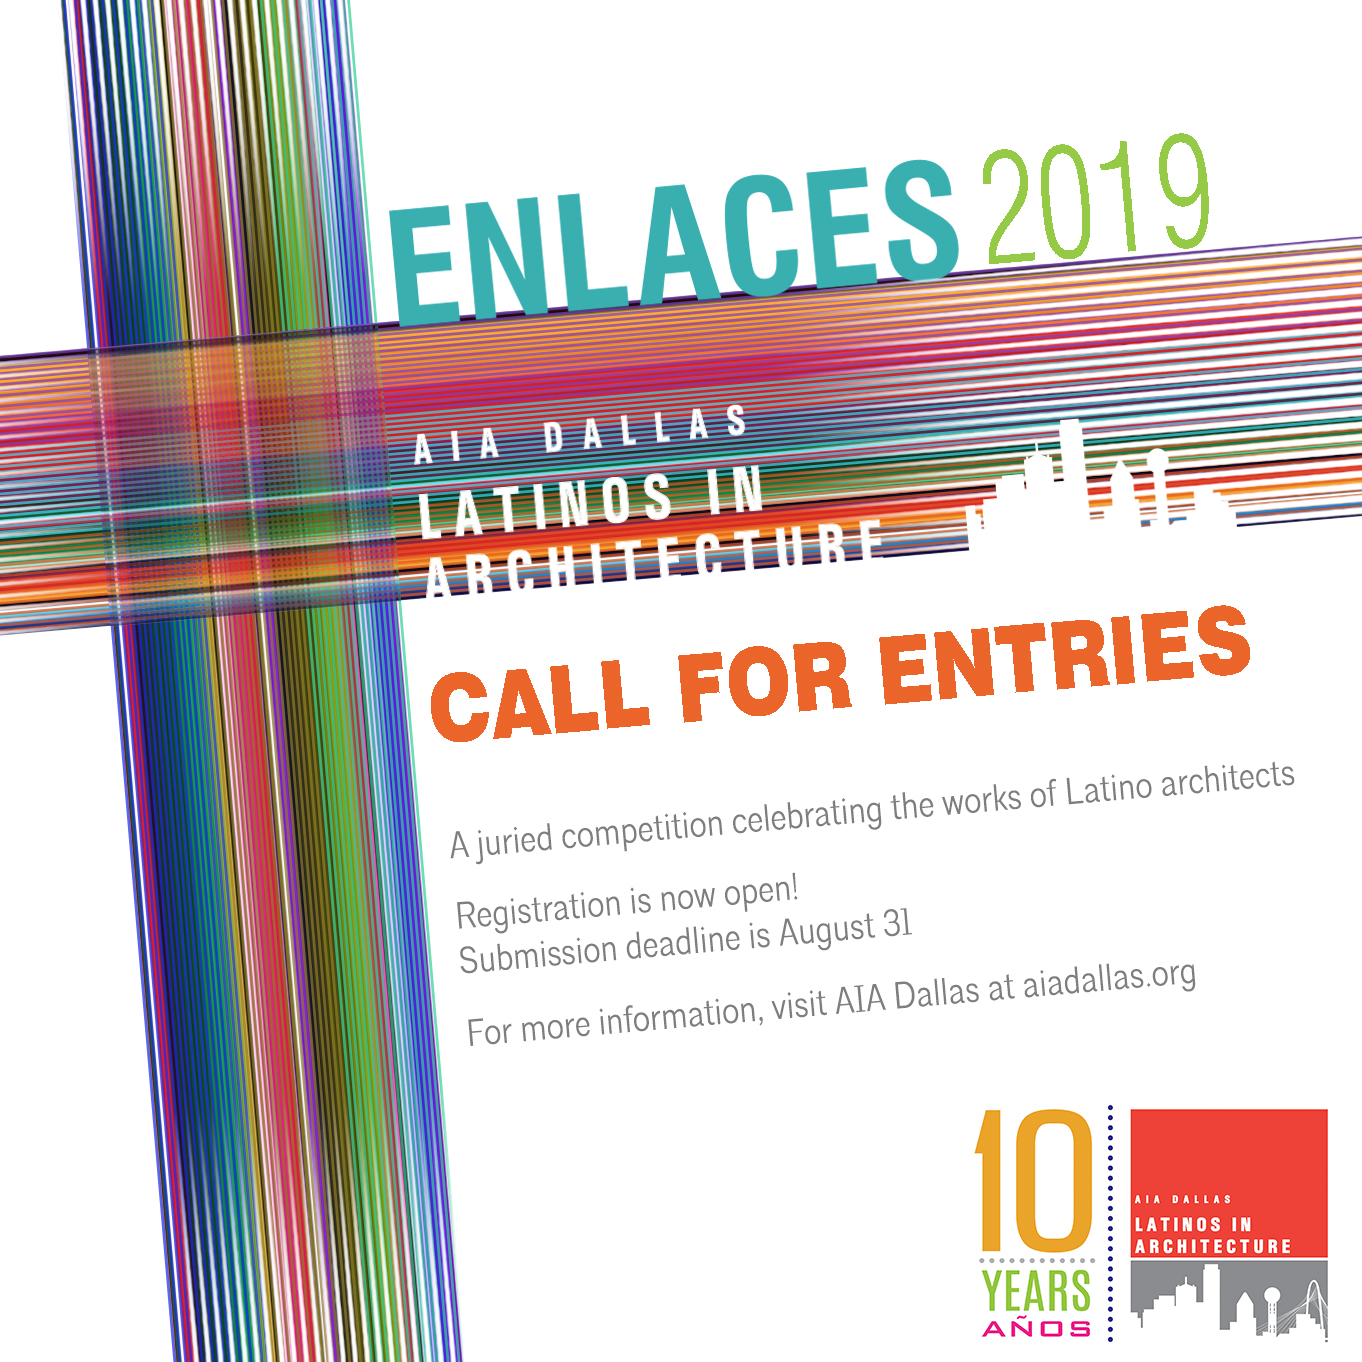 ENLACES 2019 - Call for Entries